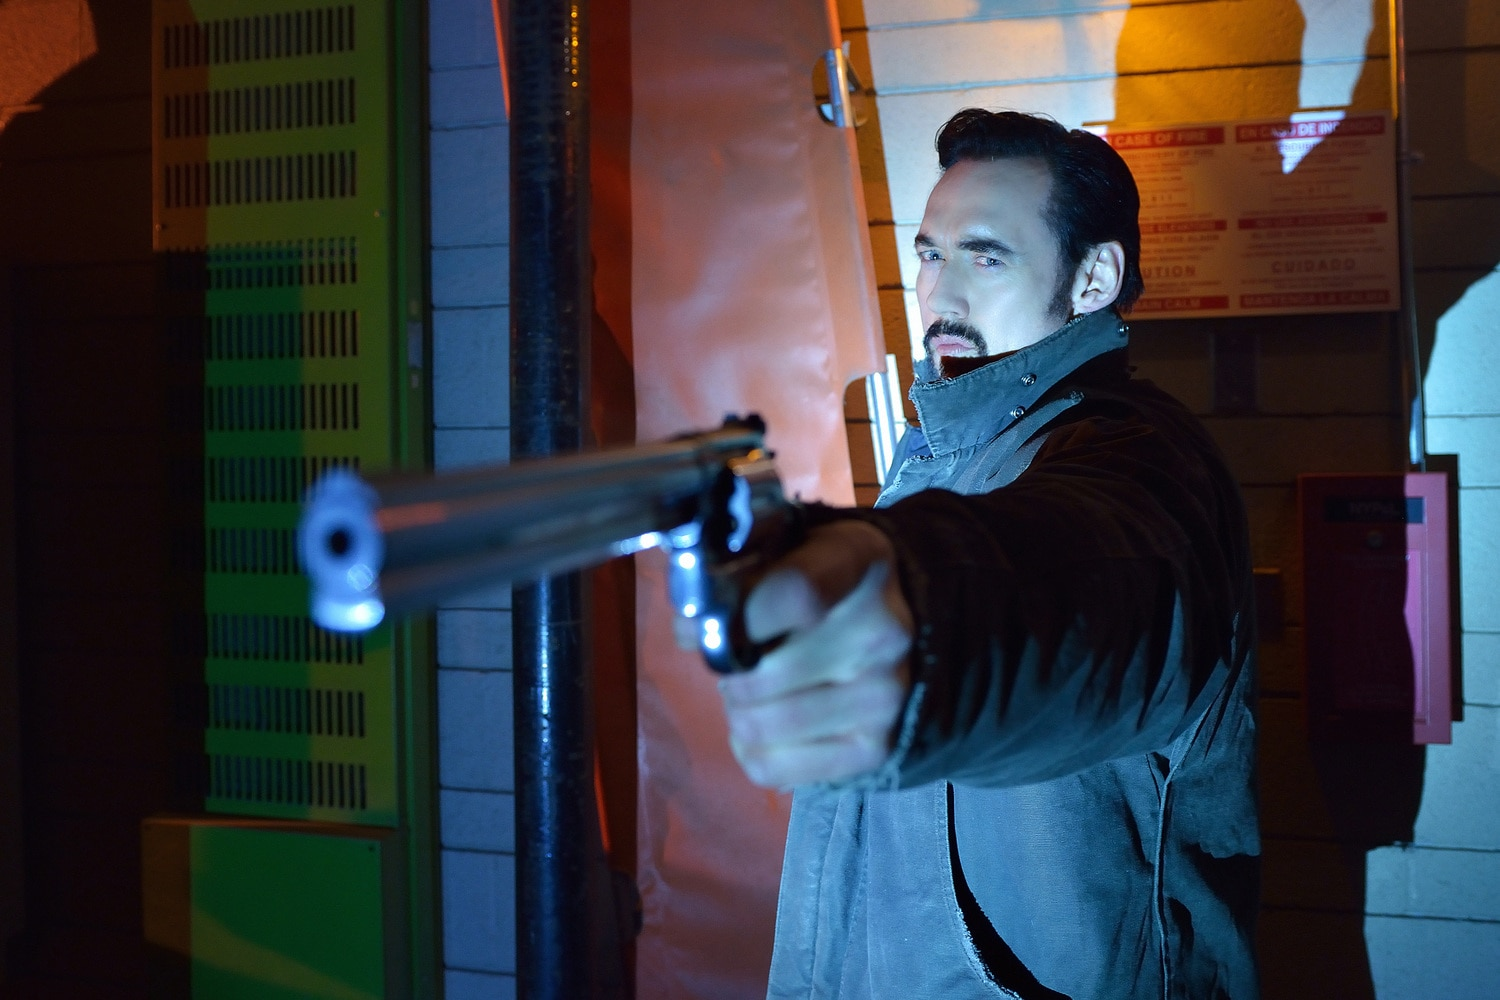 STRAIN 209 03125d hires1 - The Battle for Red Hook Rages in These Images and Preview of The Strain Episode 2.09